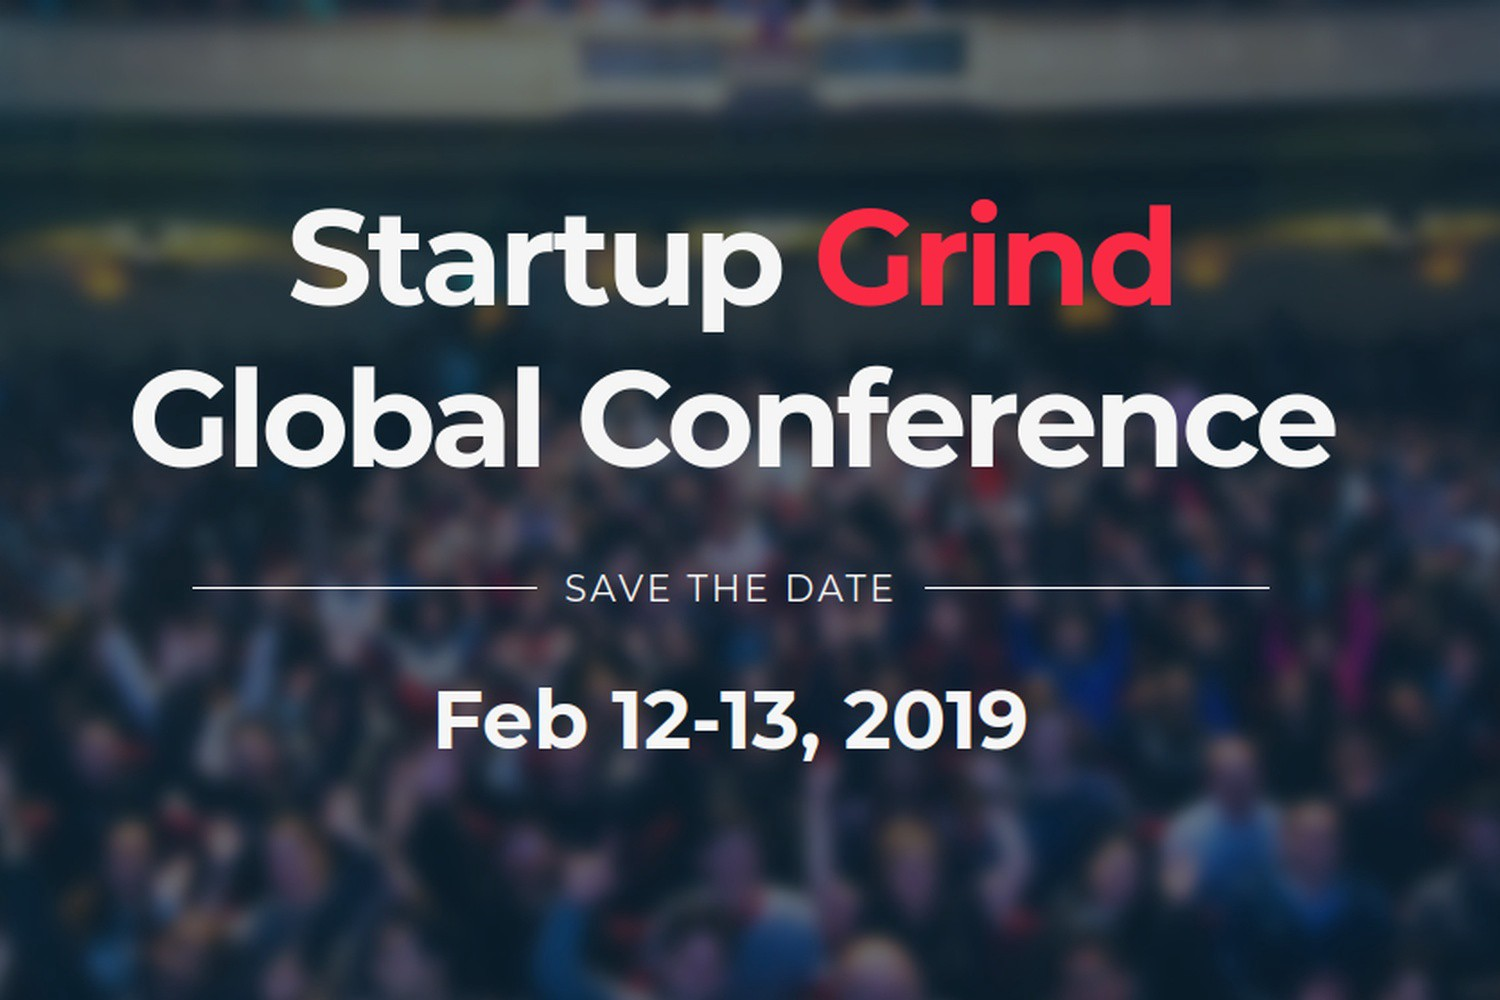 Why Not To Attend Startup Grind Global Conference 2019